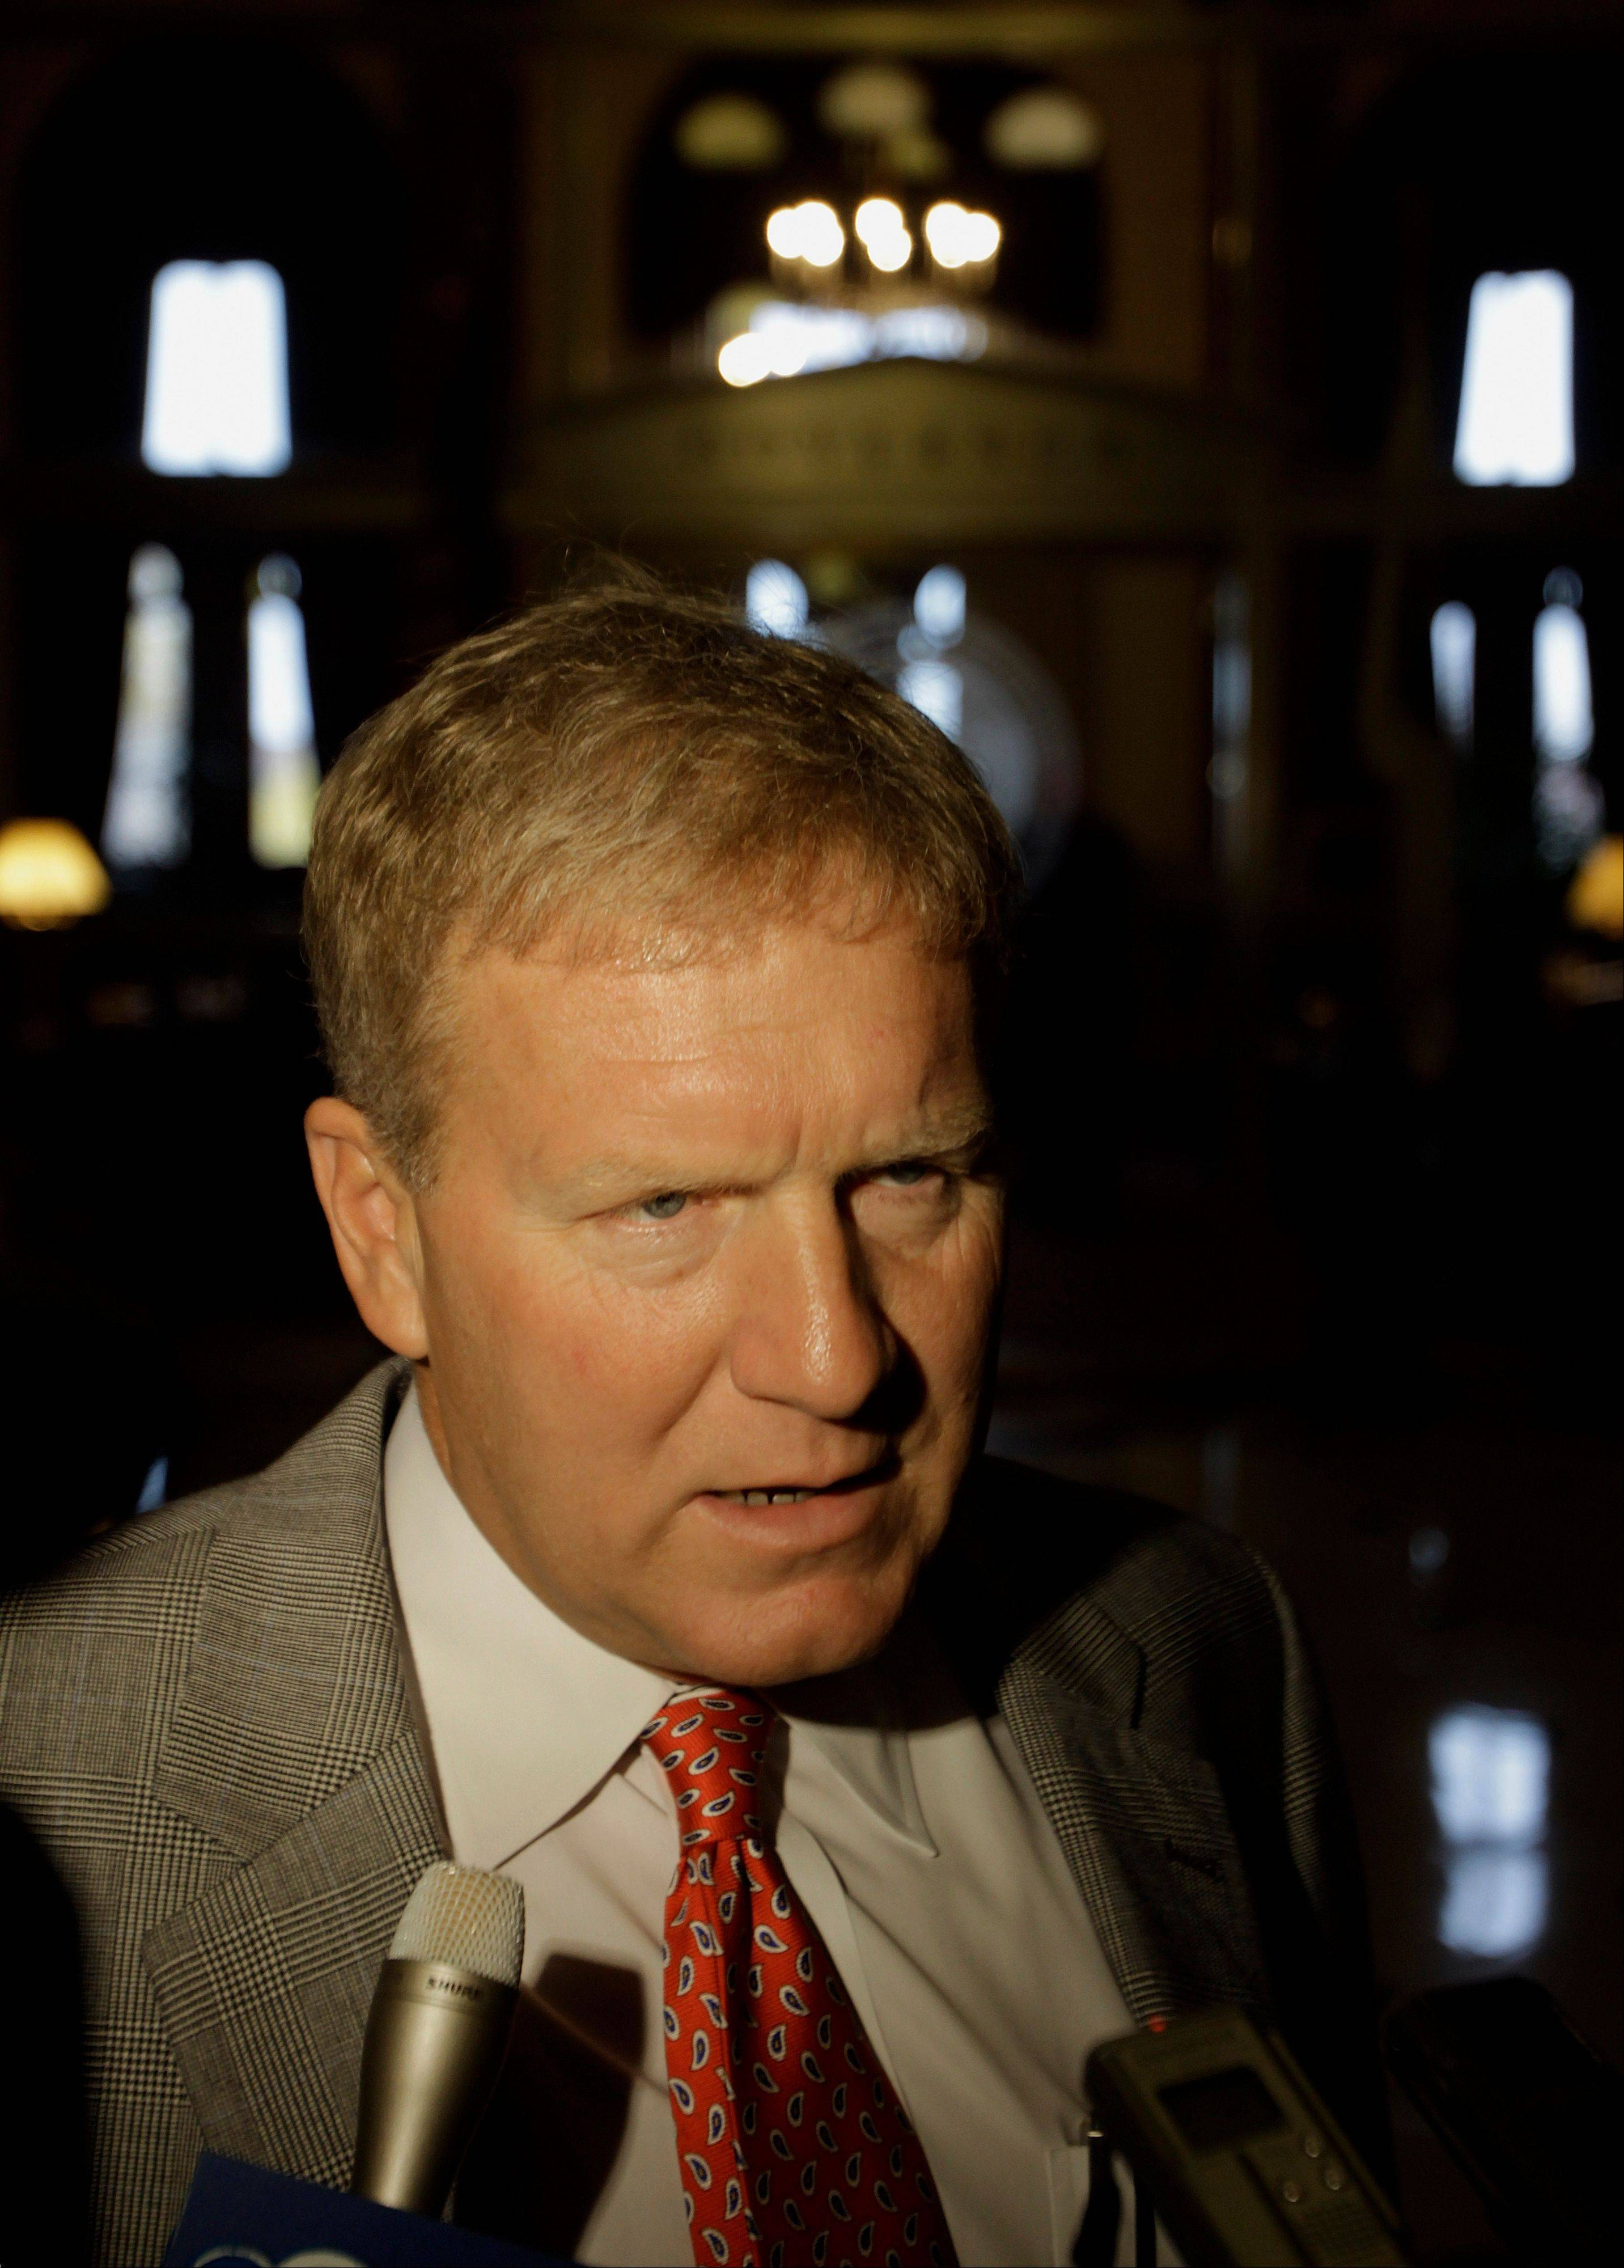 Illinois House Minority Leader Tom Cross, R-Oswego, speaks with reporters after meeting with Illinois Gov. Pat Quinn during veto session at the Illinois State Capitol Tuesday, Nov. 8, 2011 in Springfield, Ill. Proposals and counter proposals swirl through the state Capitol as lawmakers try to figure out what they can accomplish on a long list of topics.